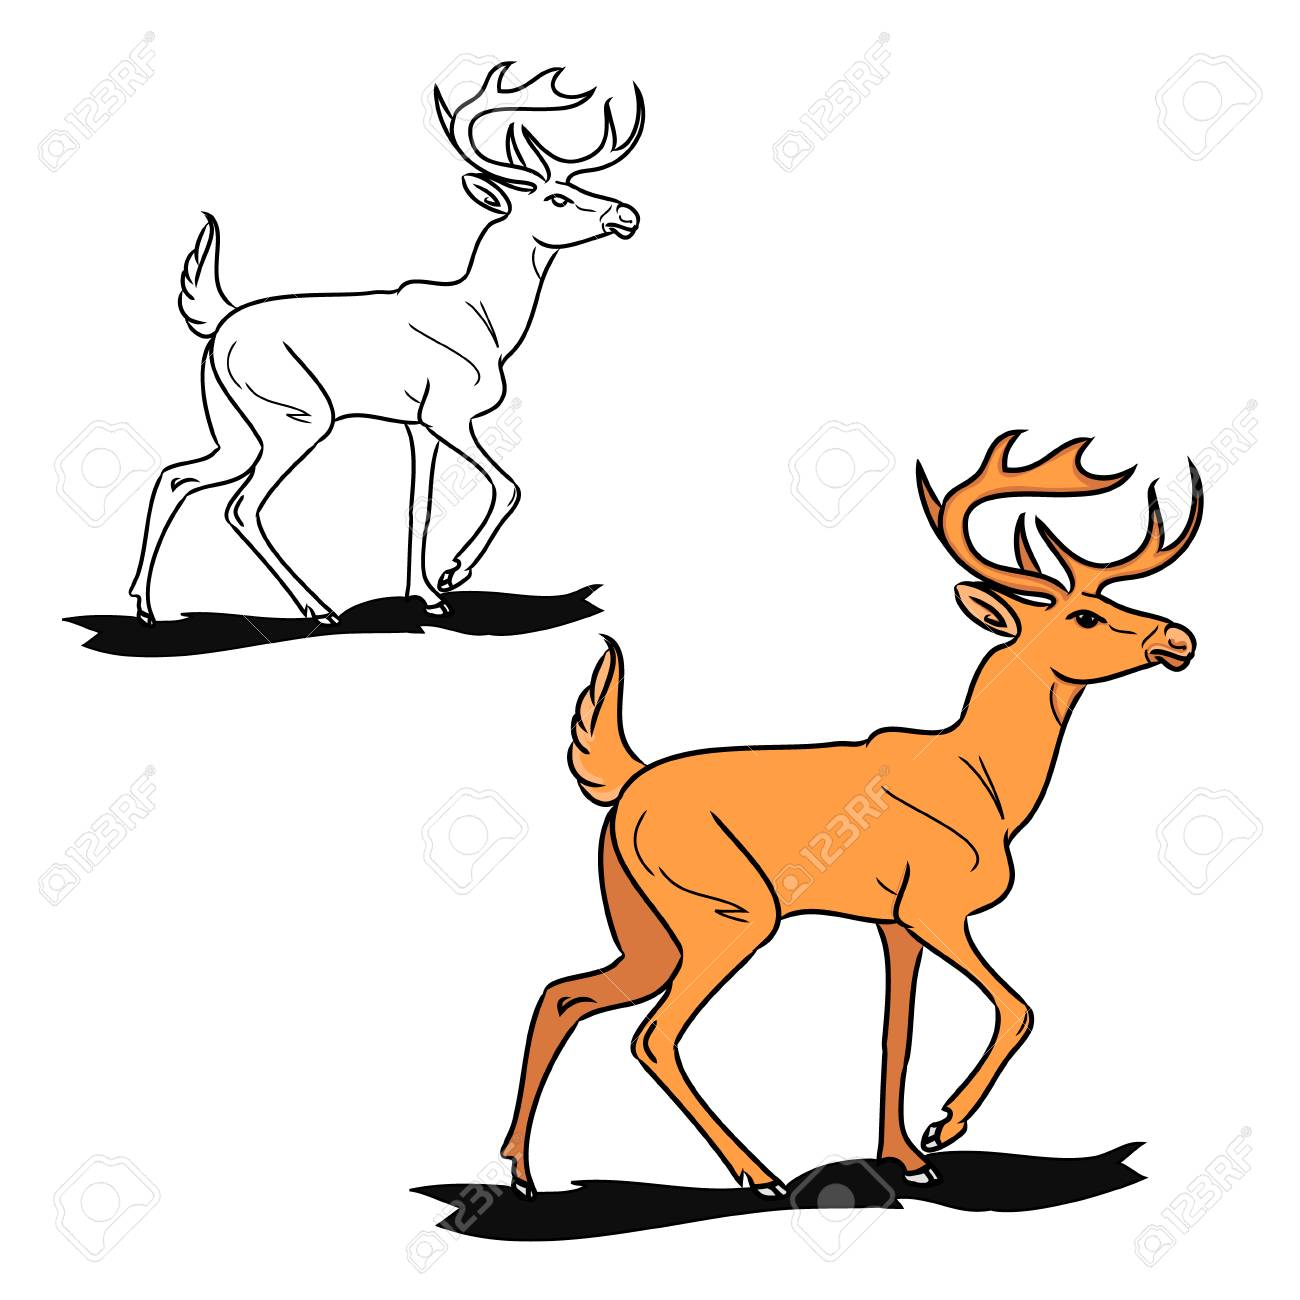 O Deer Graphic image of deer. The picture red reindeer on a white background.  Outline and